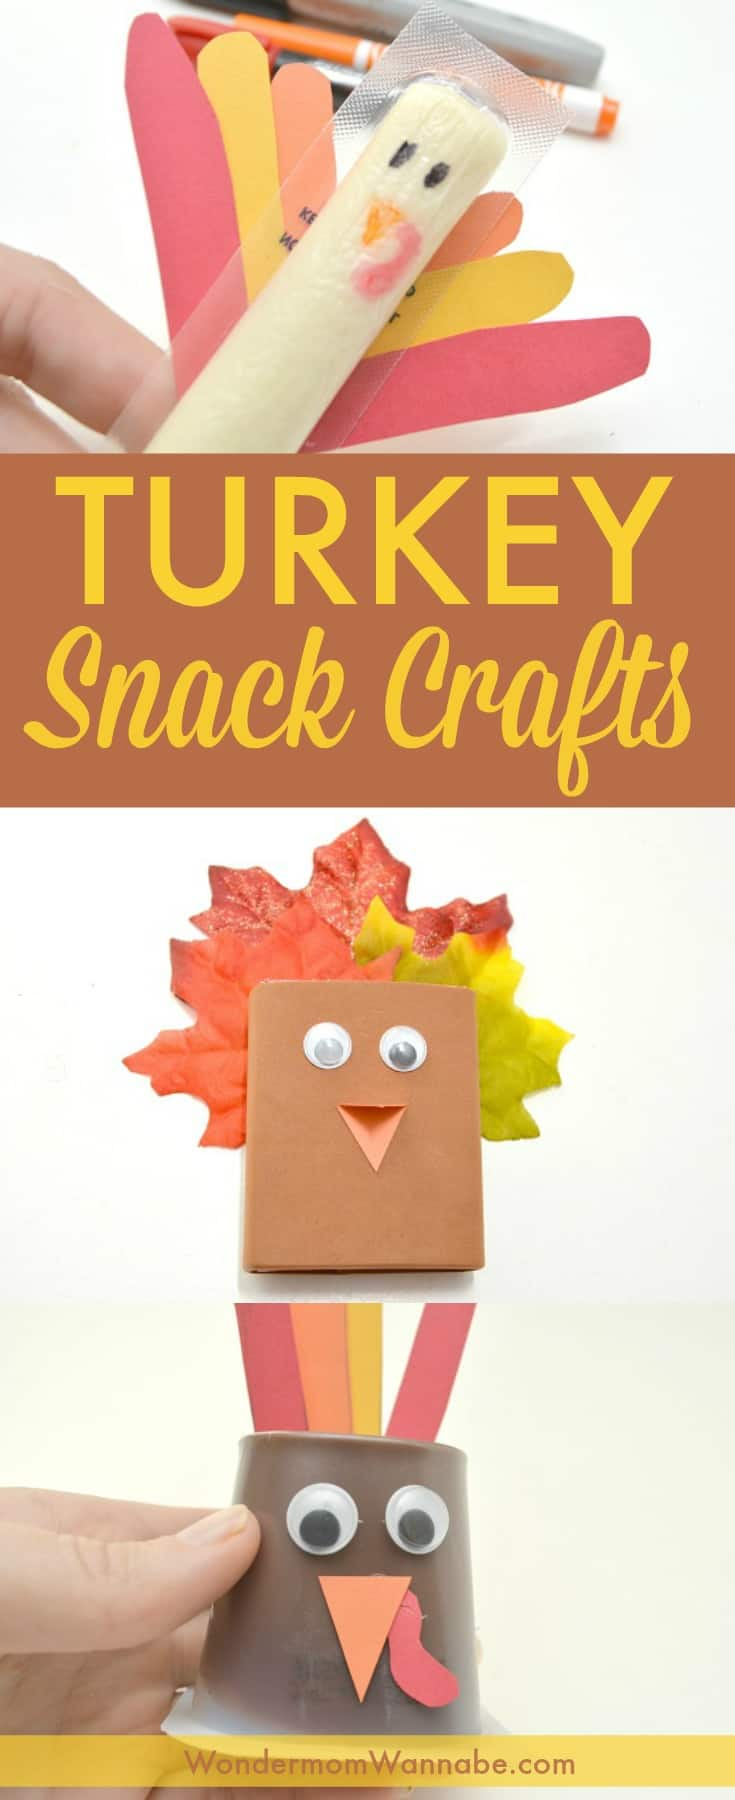 These turkey-themed Thanksgiving snacks are such a fun way to get kids excited about Thanksgiving!